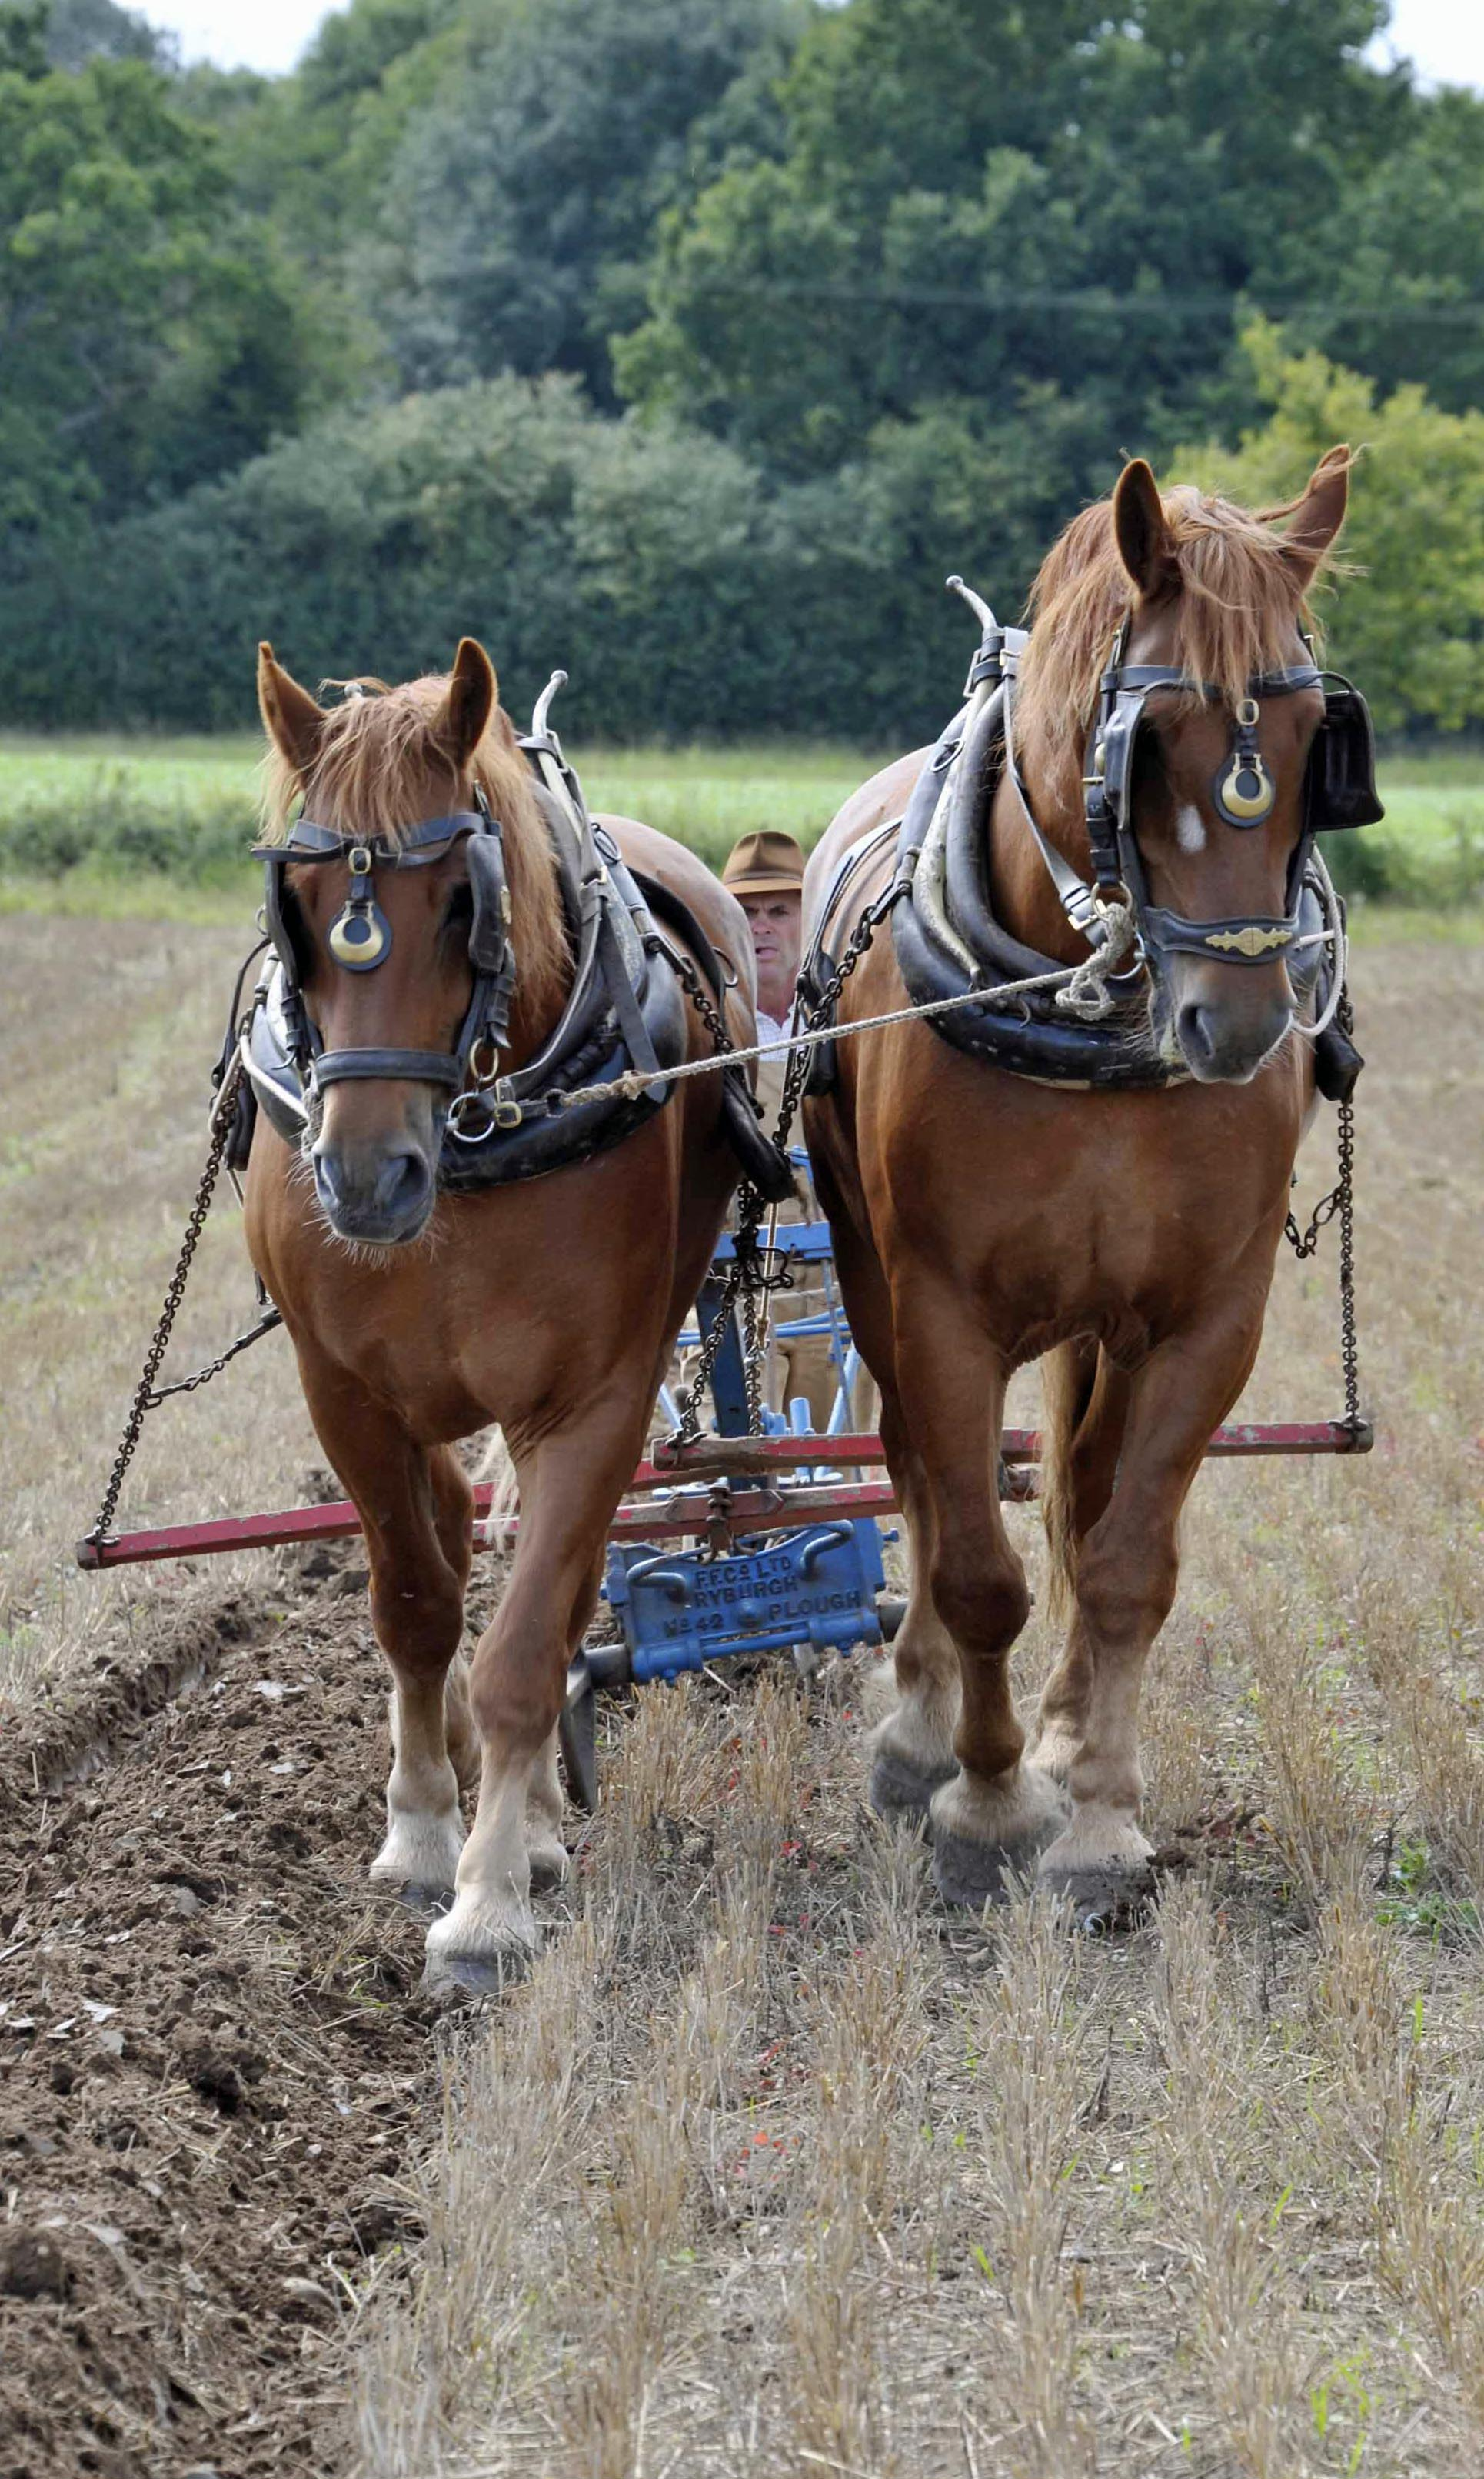 Suffolk Punch heavy horses working at Gressenhall Farm and Workhouse, Norfolk